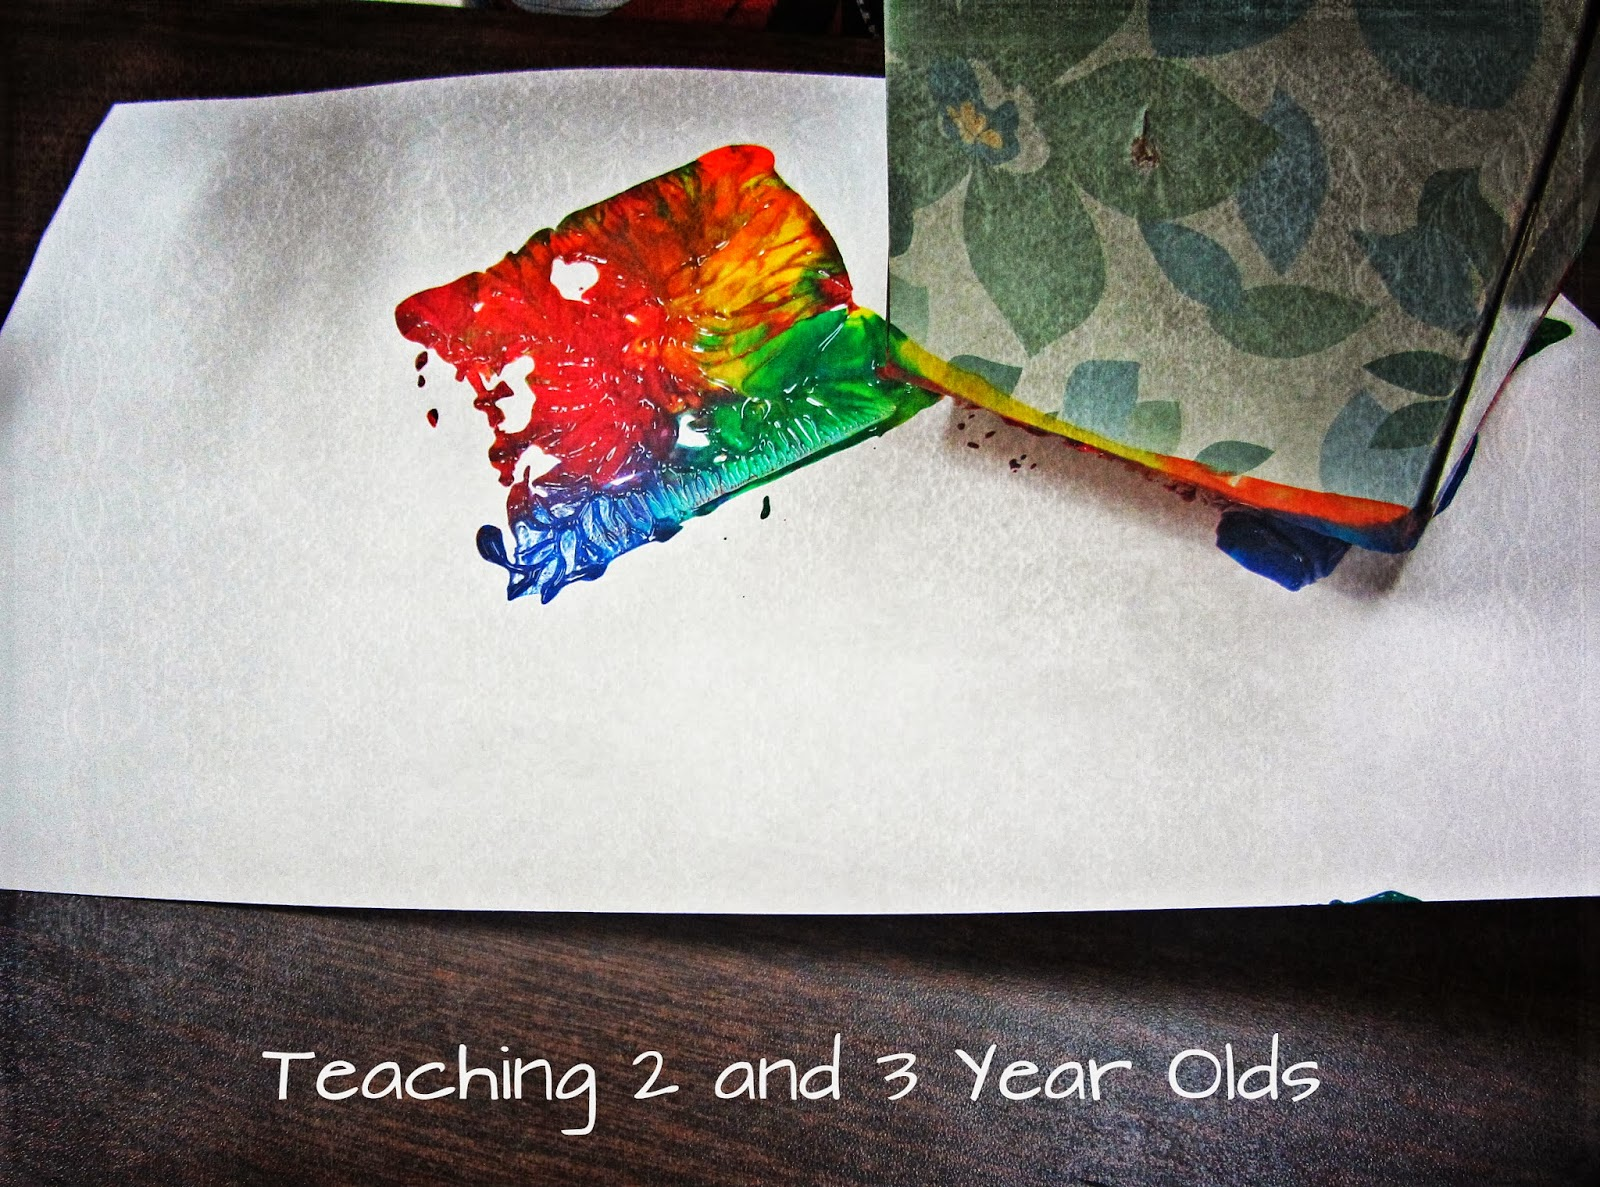 10 Favorite Painting Activities - Teaching 2 and 3 Year Olds